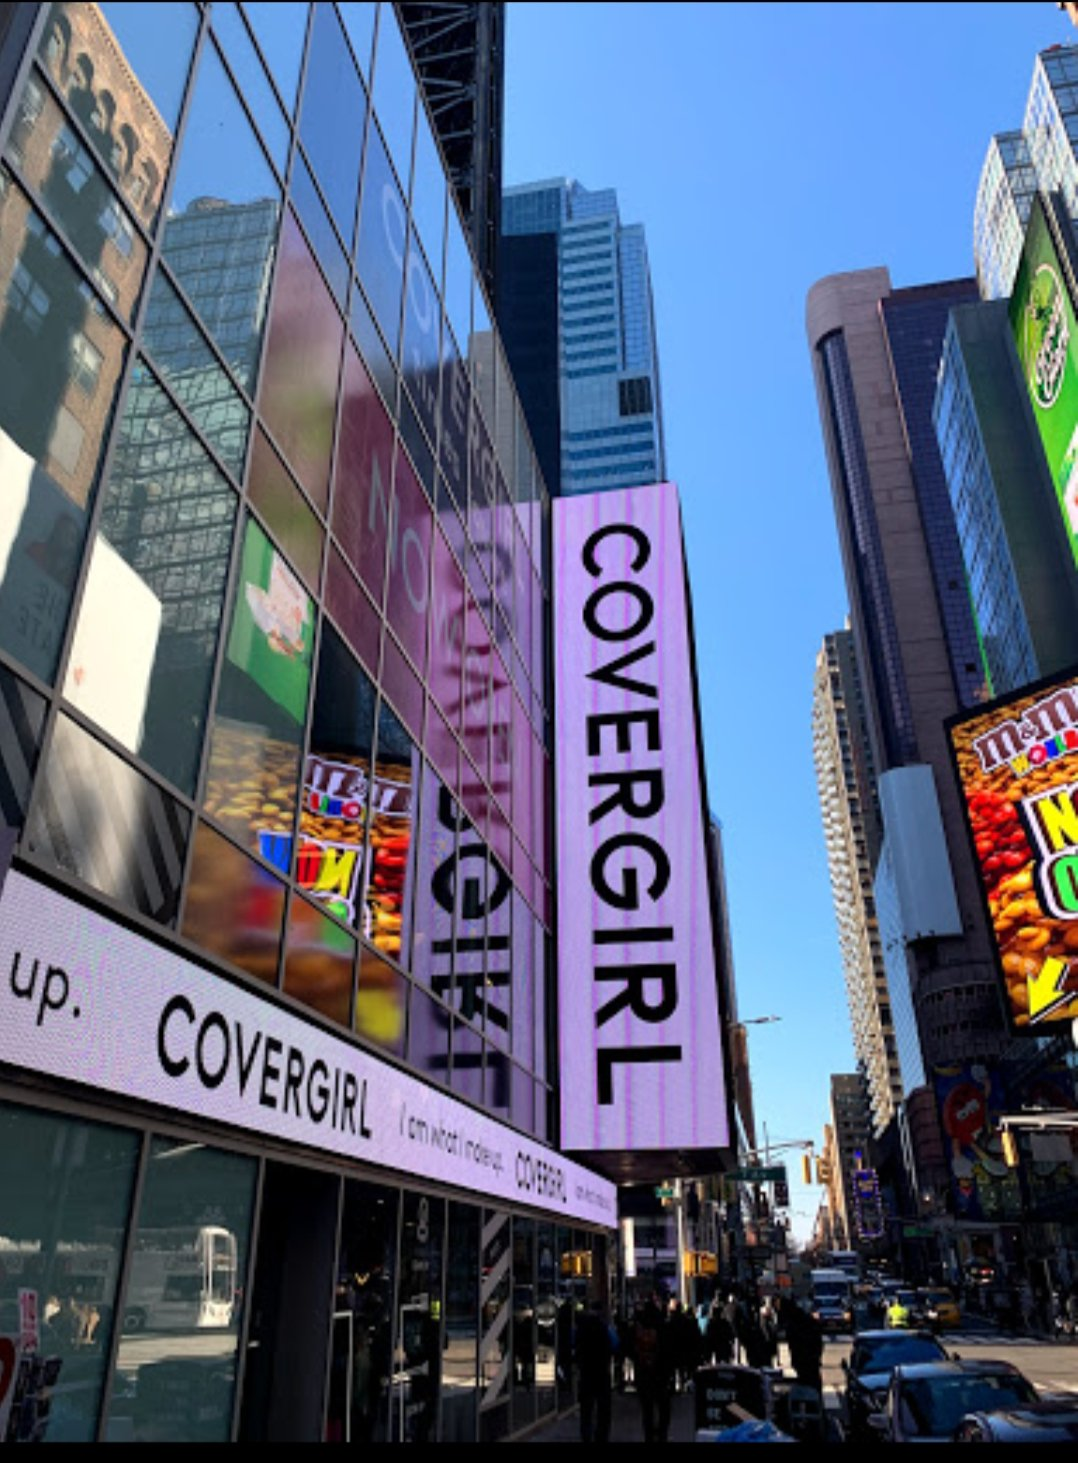 Covergirl launches flagship store in Times Square – The Fashion Goddess